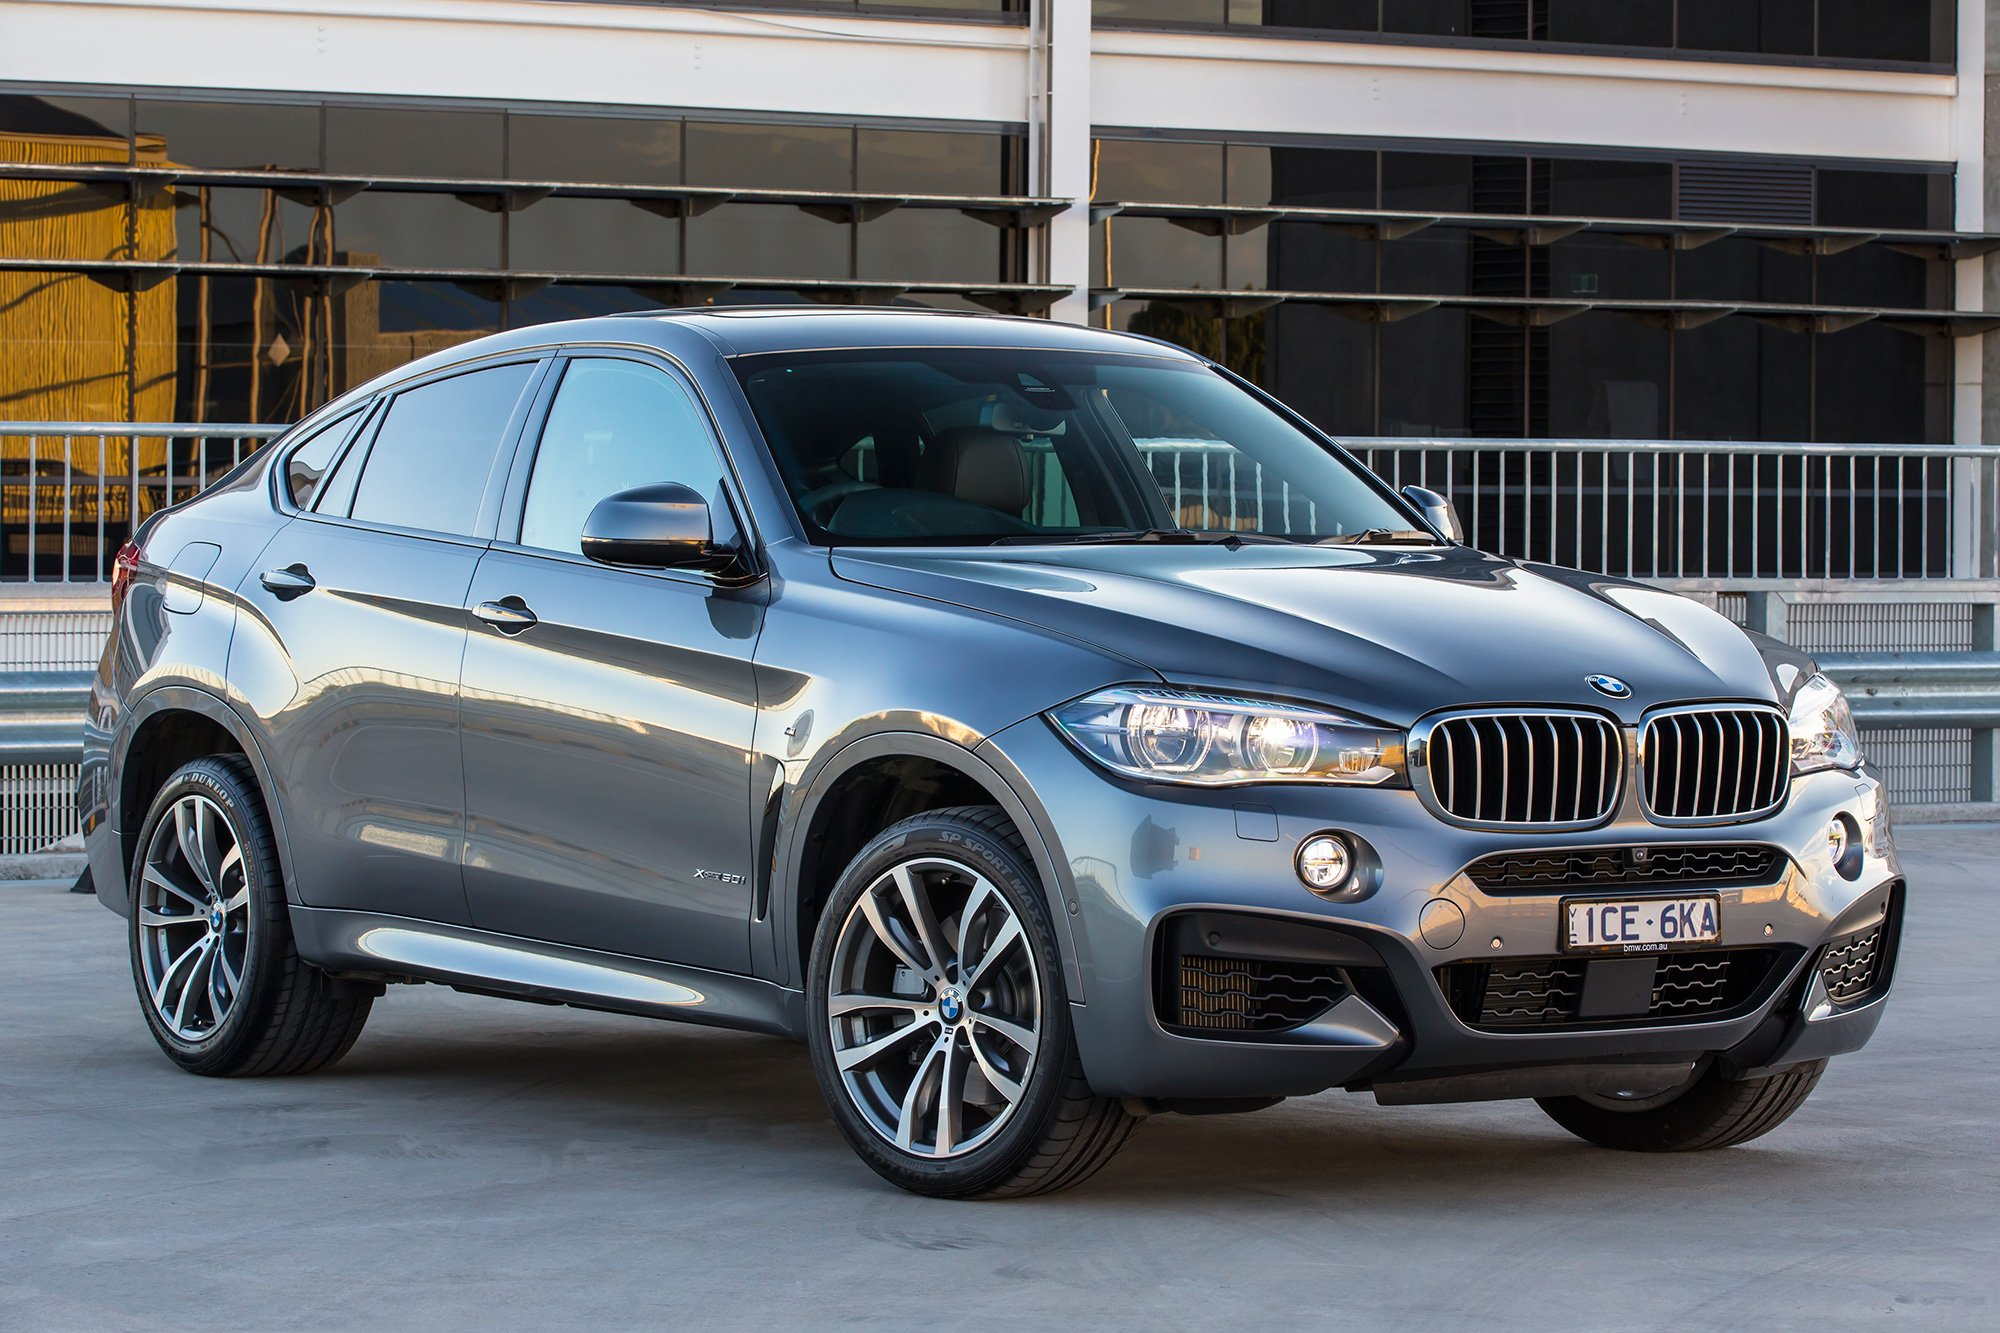 2015 Bmw X6 Pricing And Specifications Photos 1 Of 7